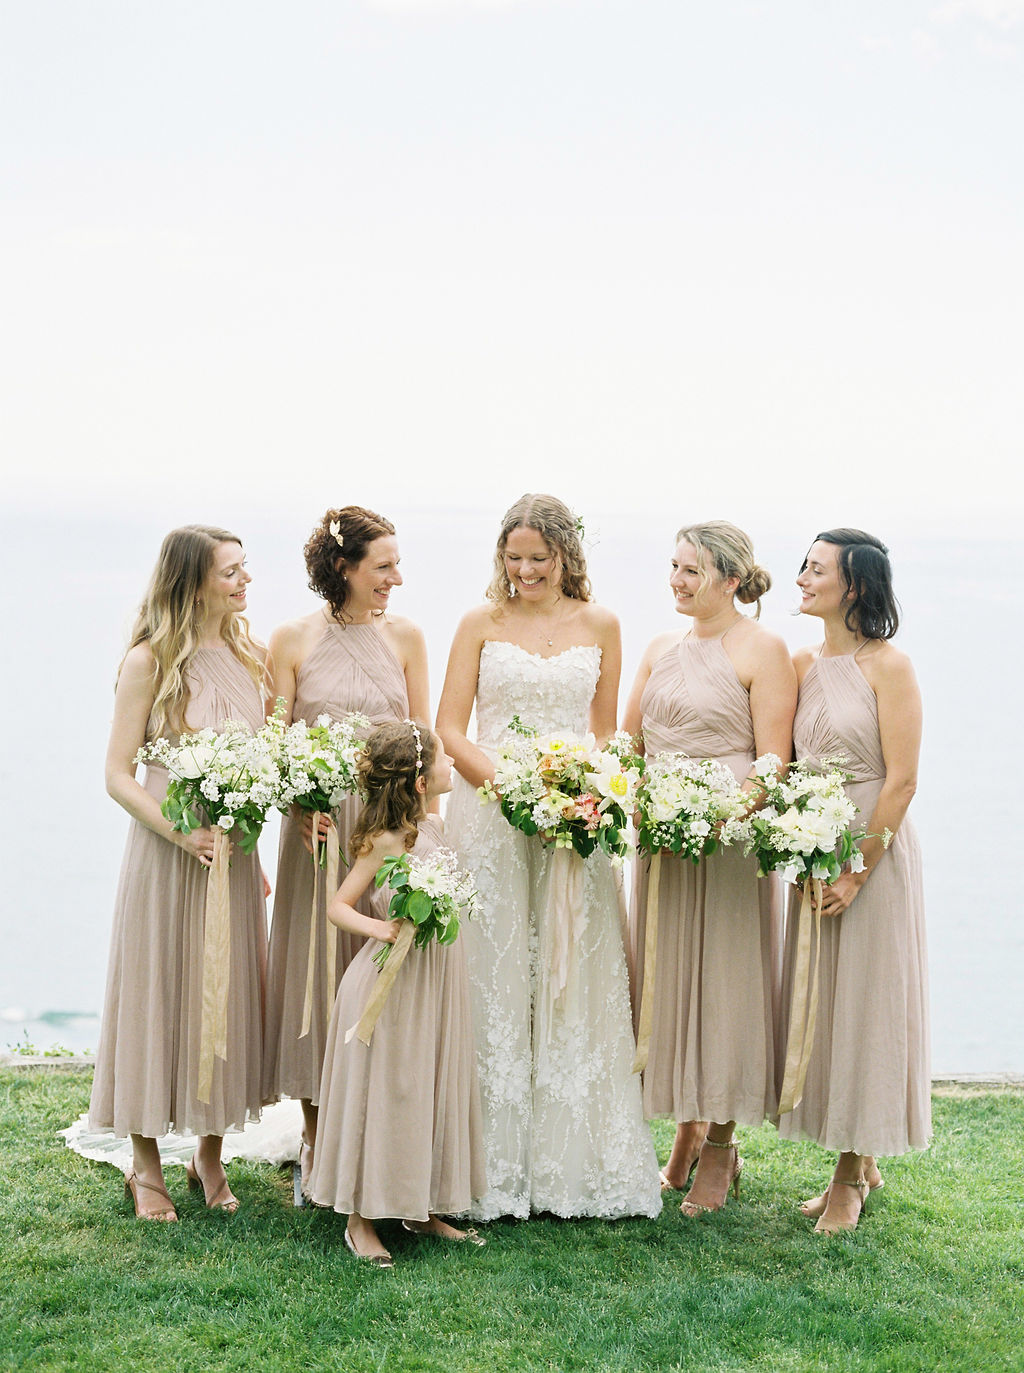 Brides and Bridesmaids bouquets using seasonal flowers.